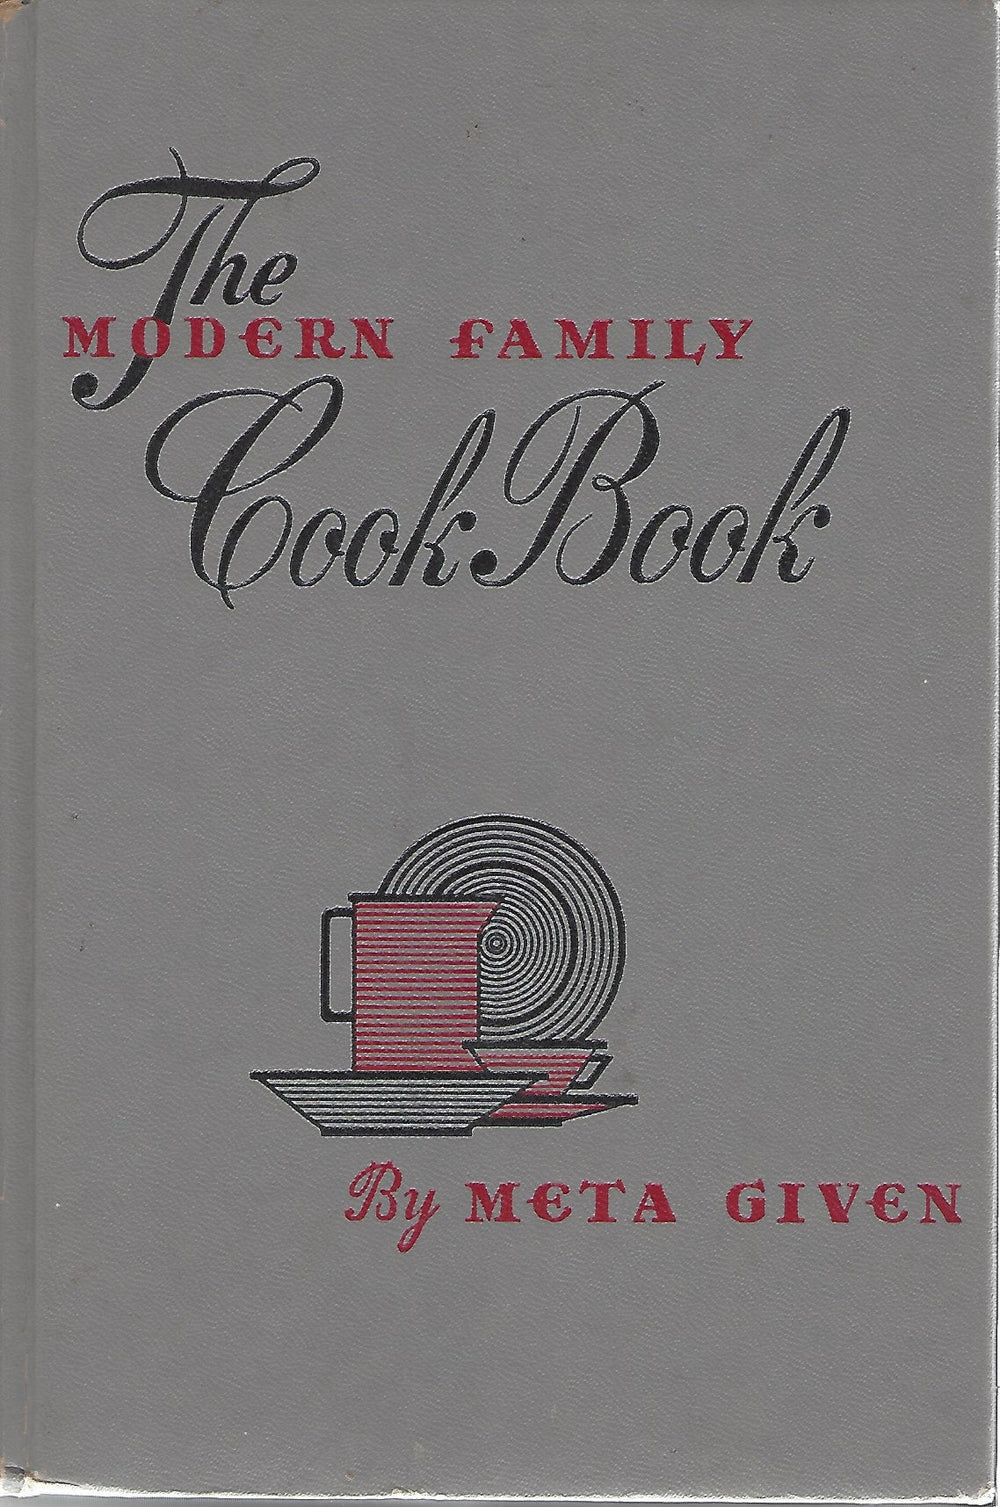 The Modern Family Cookbook by Meta Given  (Hardcover) 1953